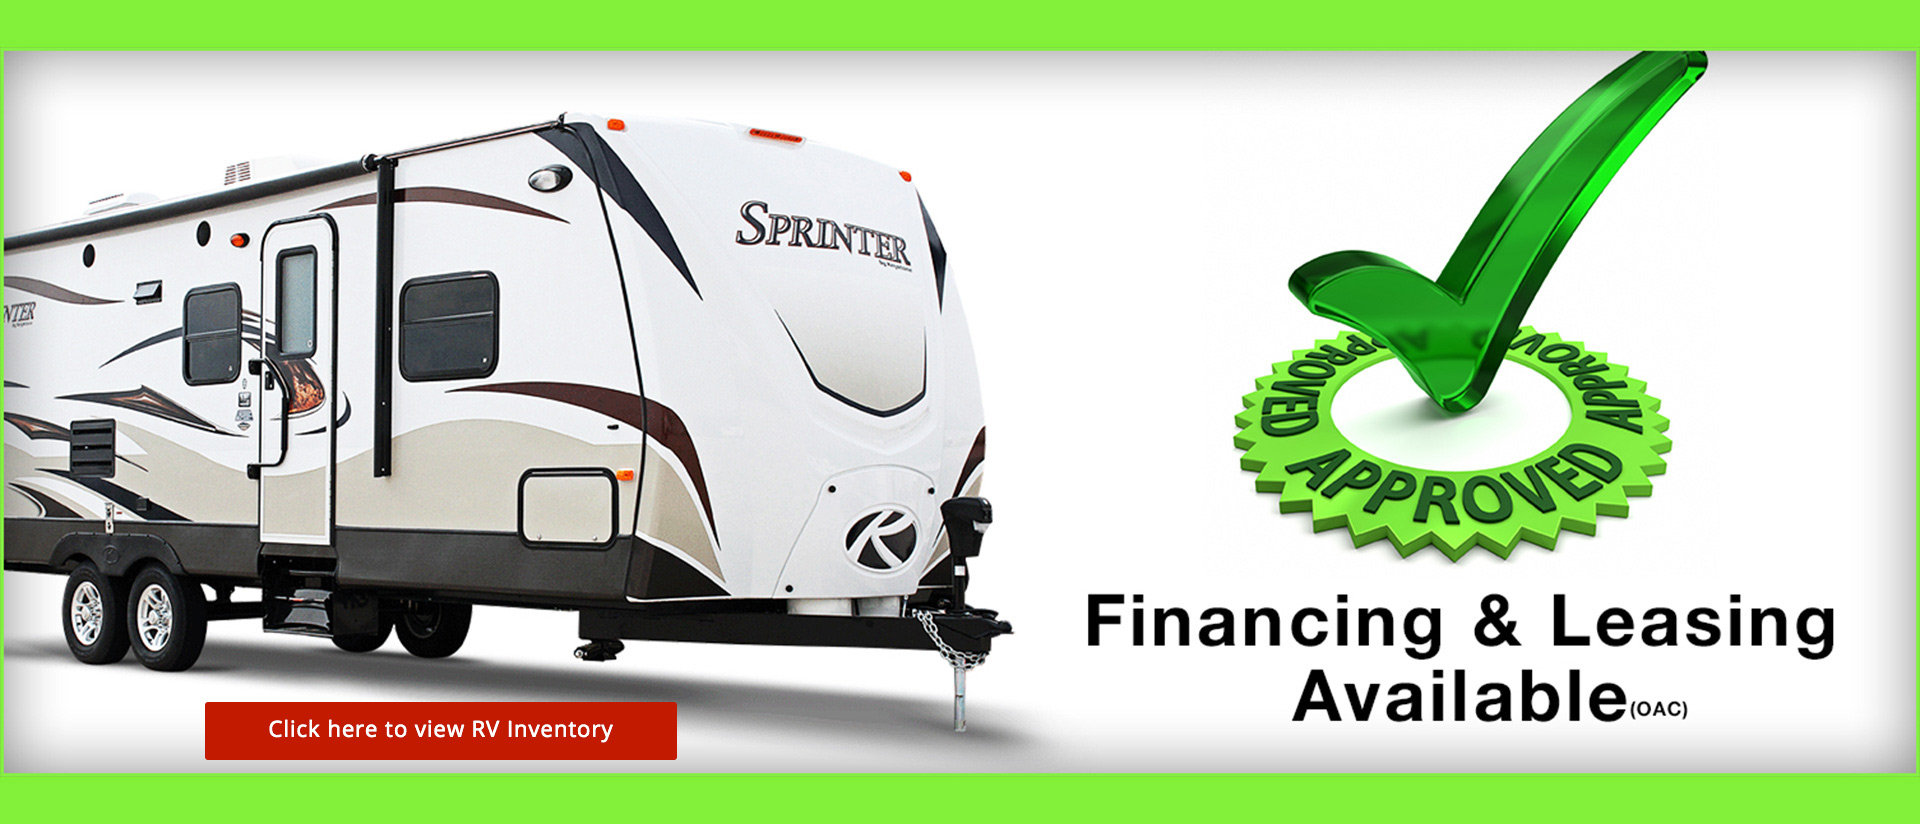 RV Inventory - Financing available